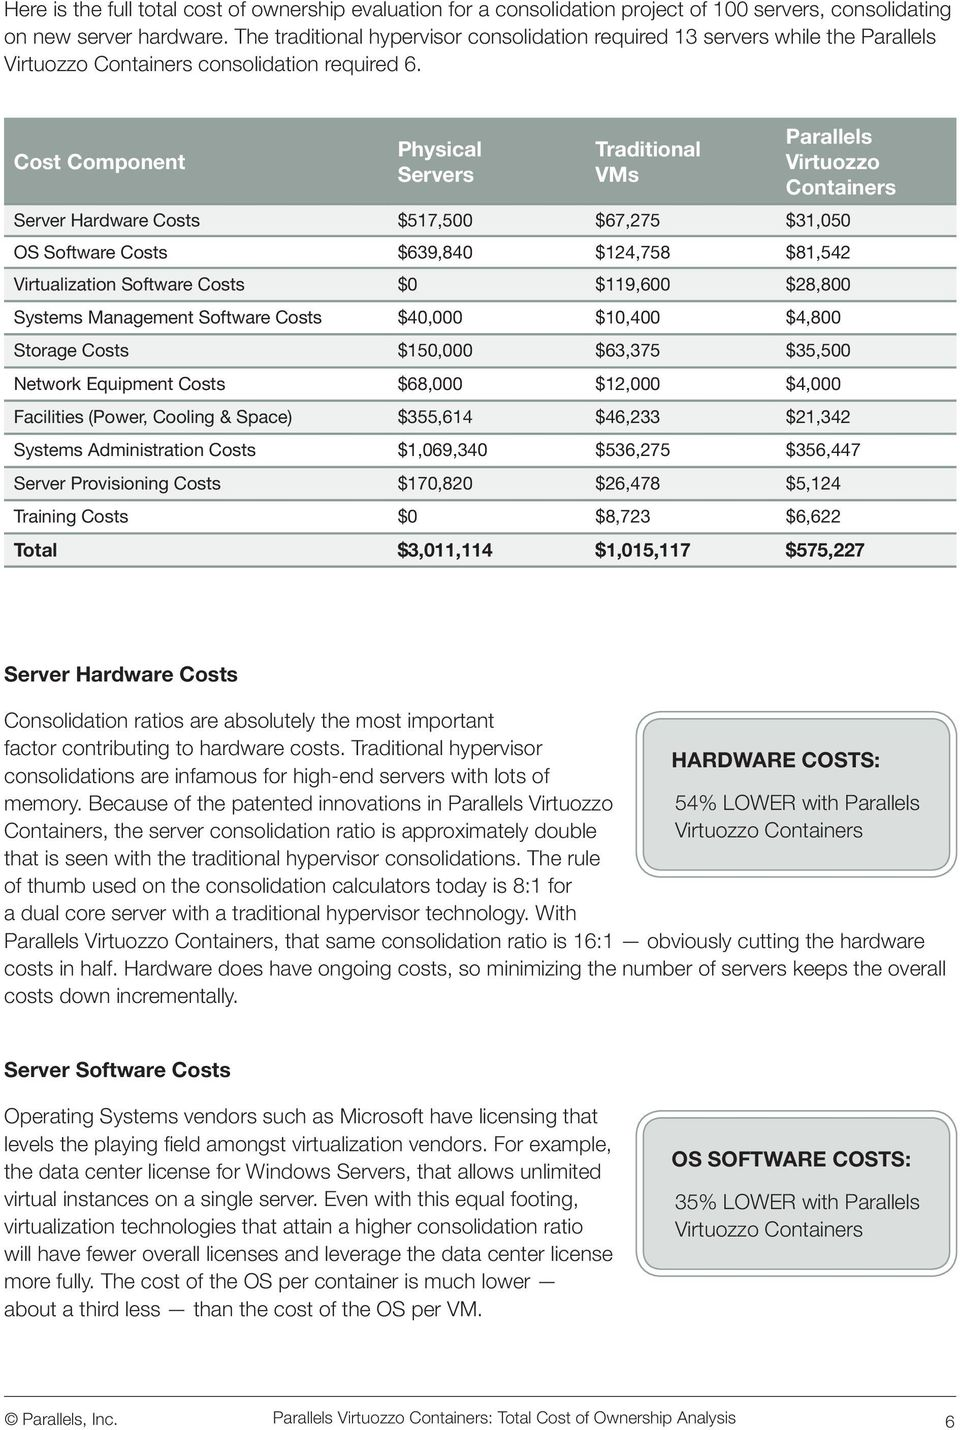 Cost Component Physical Servers Traditional VMs Parallels Virtuozzo Server Hardware Costs $517,500 $67,275 $31,050 OS Software Costs $639,840 $124,758 $81,542 Virtualization Software Costs $0